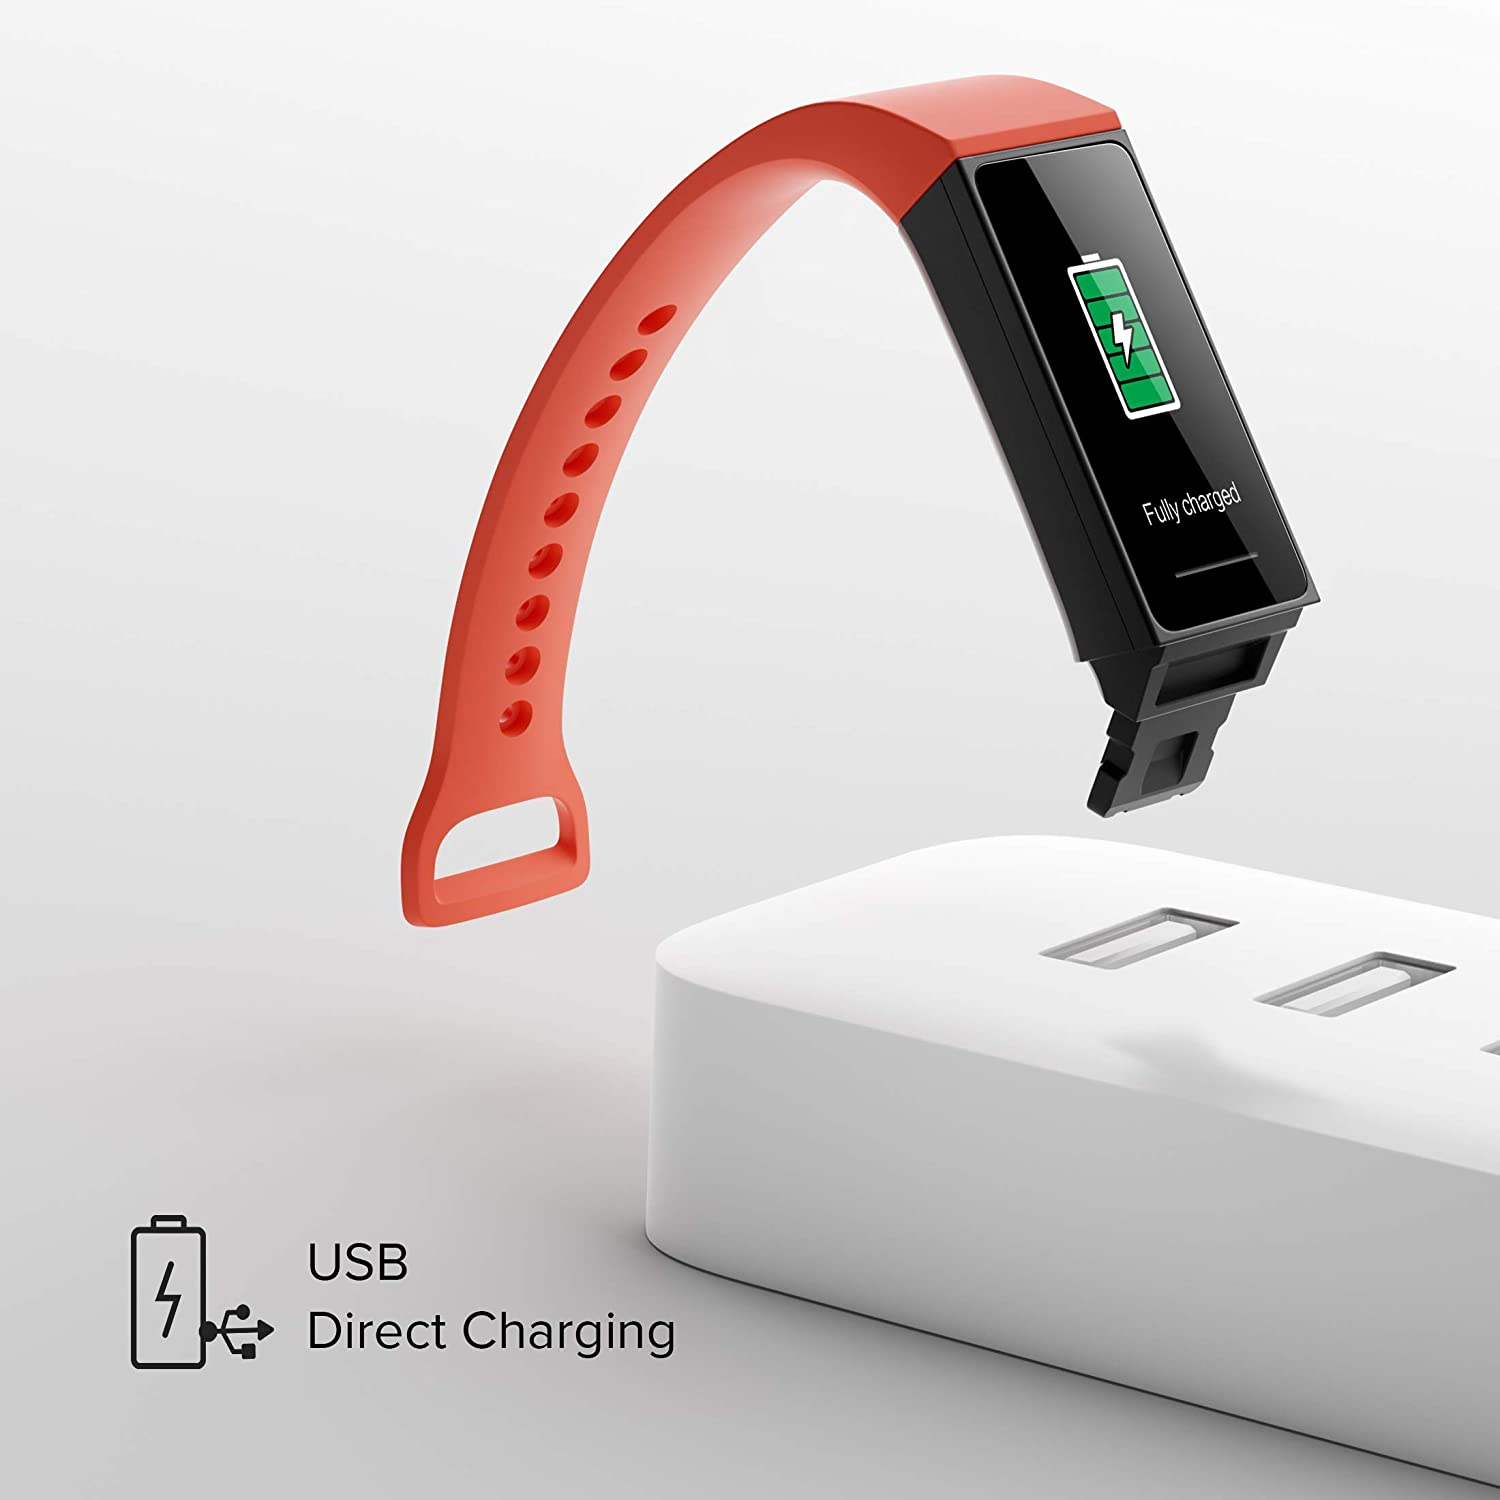 Redmi Smart Band – (Direct USB Charging, Full Touch Colour Display, Upto 14-Day Battery Life, Works with Xiaomi Wear App)